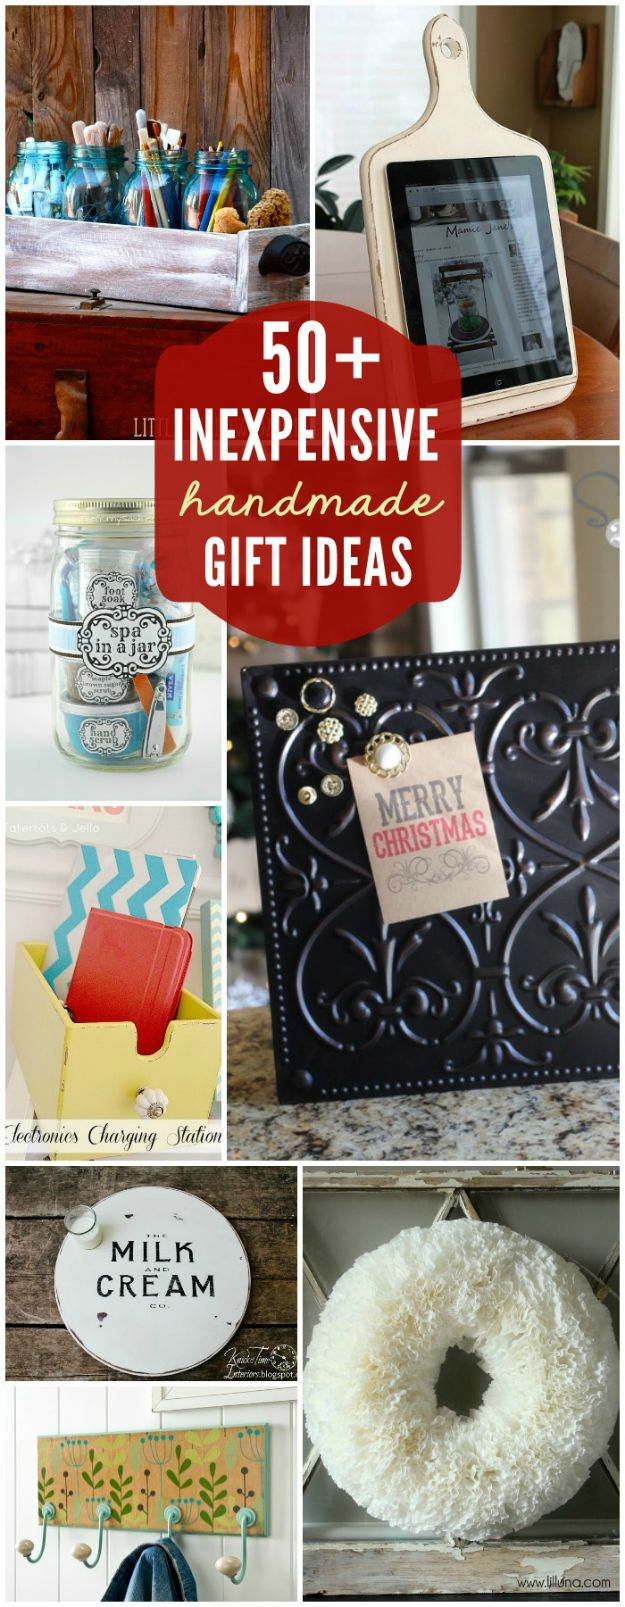 50+ Very Cheap DIY Gift Ideas - DIY Ideas 4 Home